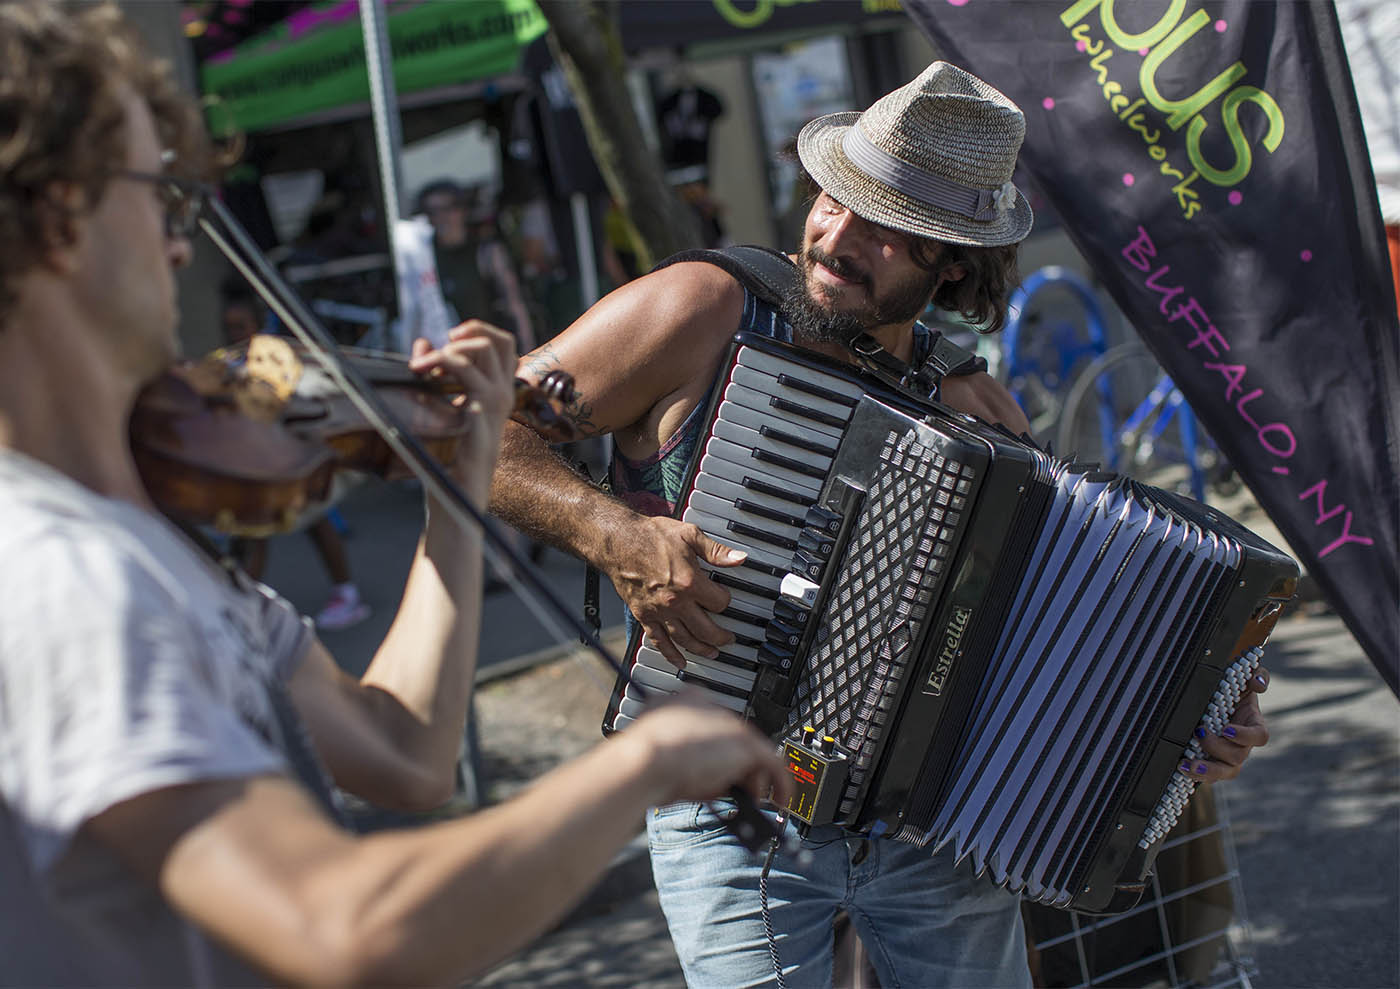 David Adamczyk and Christopher Kozlowski perform on the street at the Elmwood Avenue Festival for the Arts, Saturday, Aug. 27, 2016. (Derek Gee/Buffalo News)